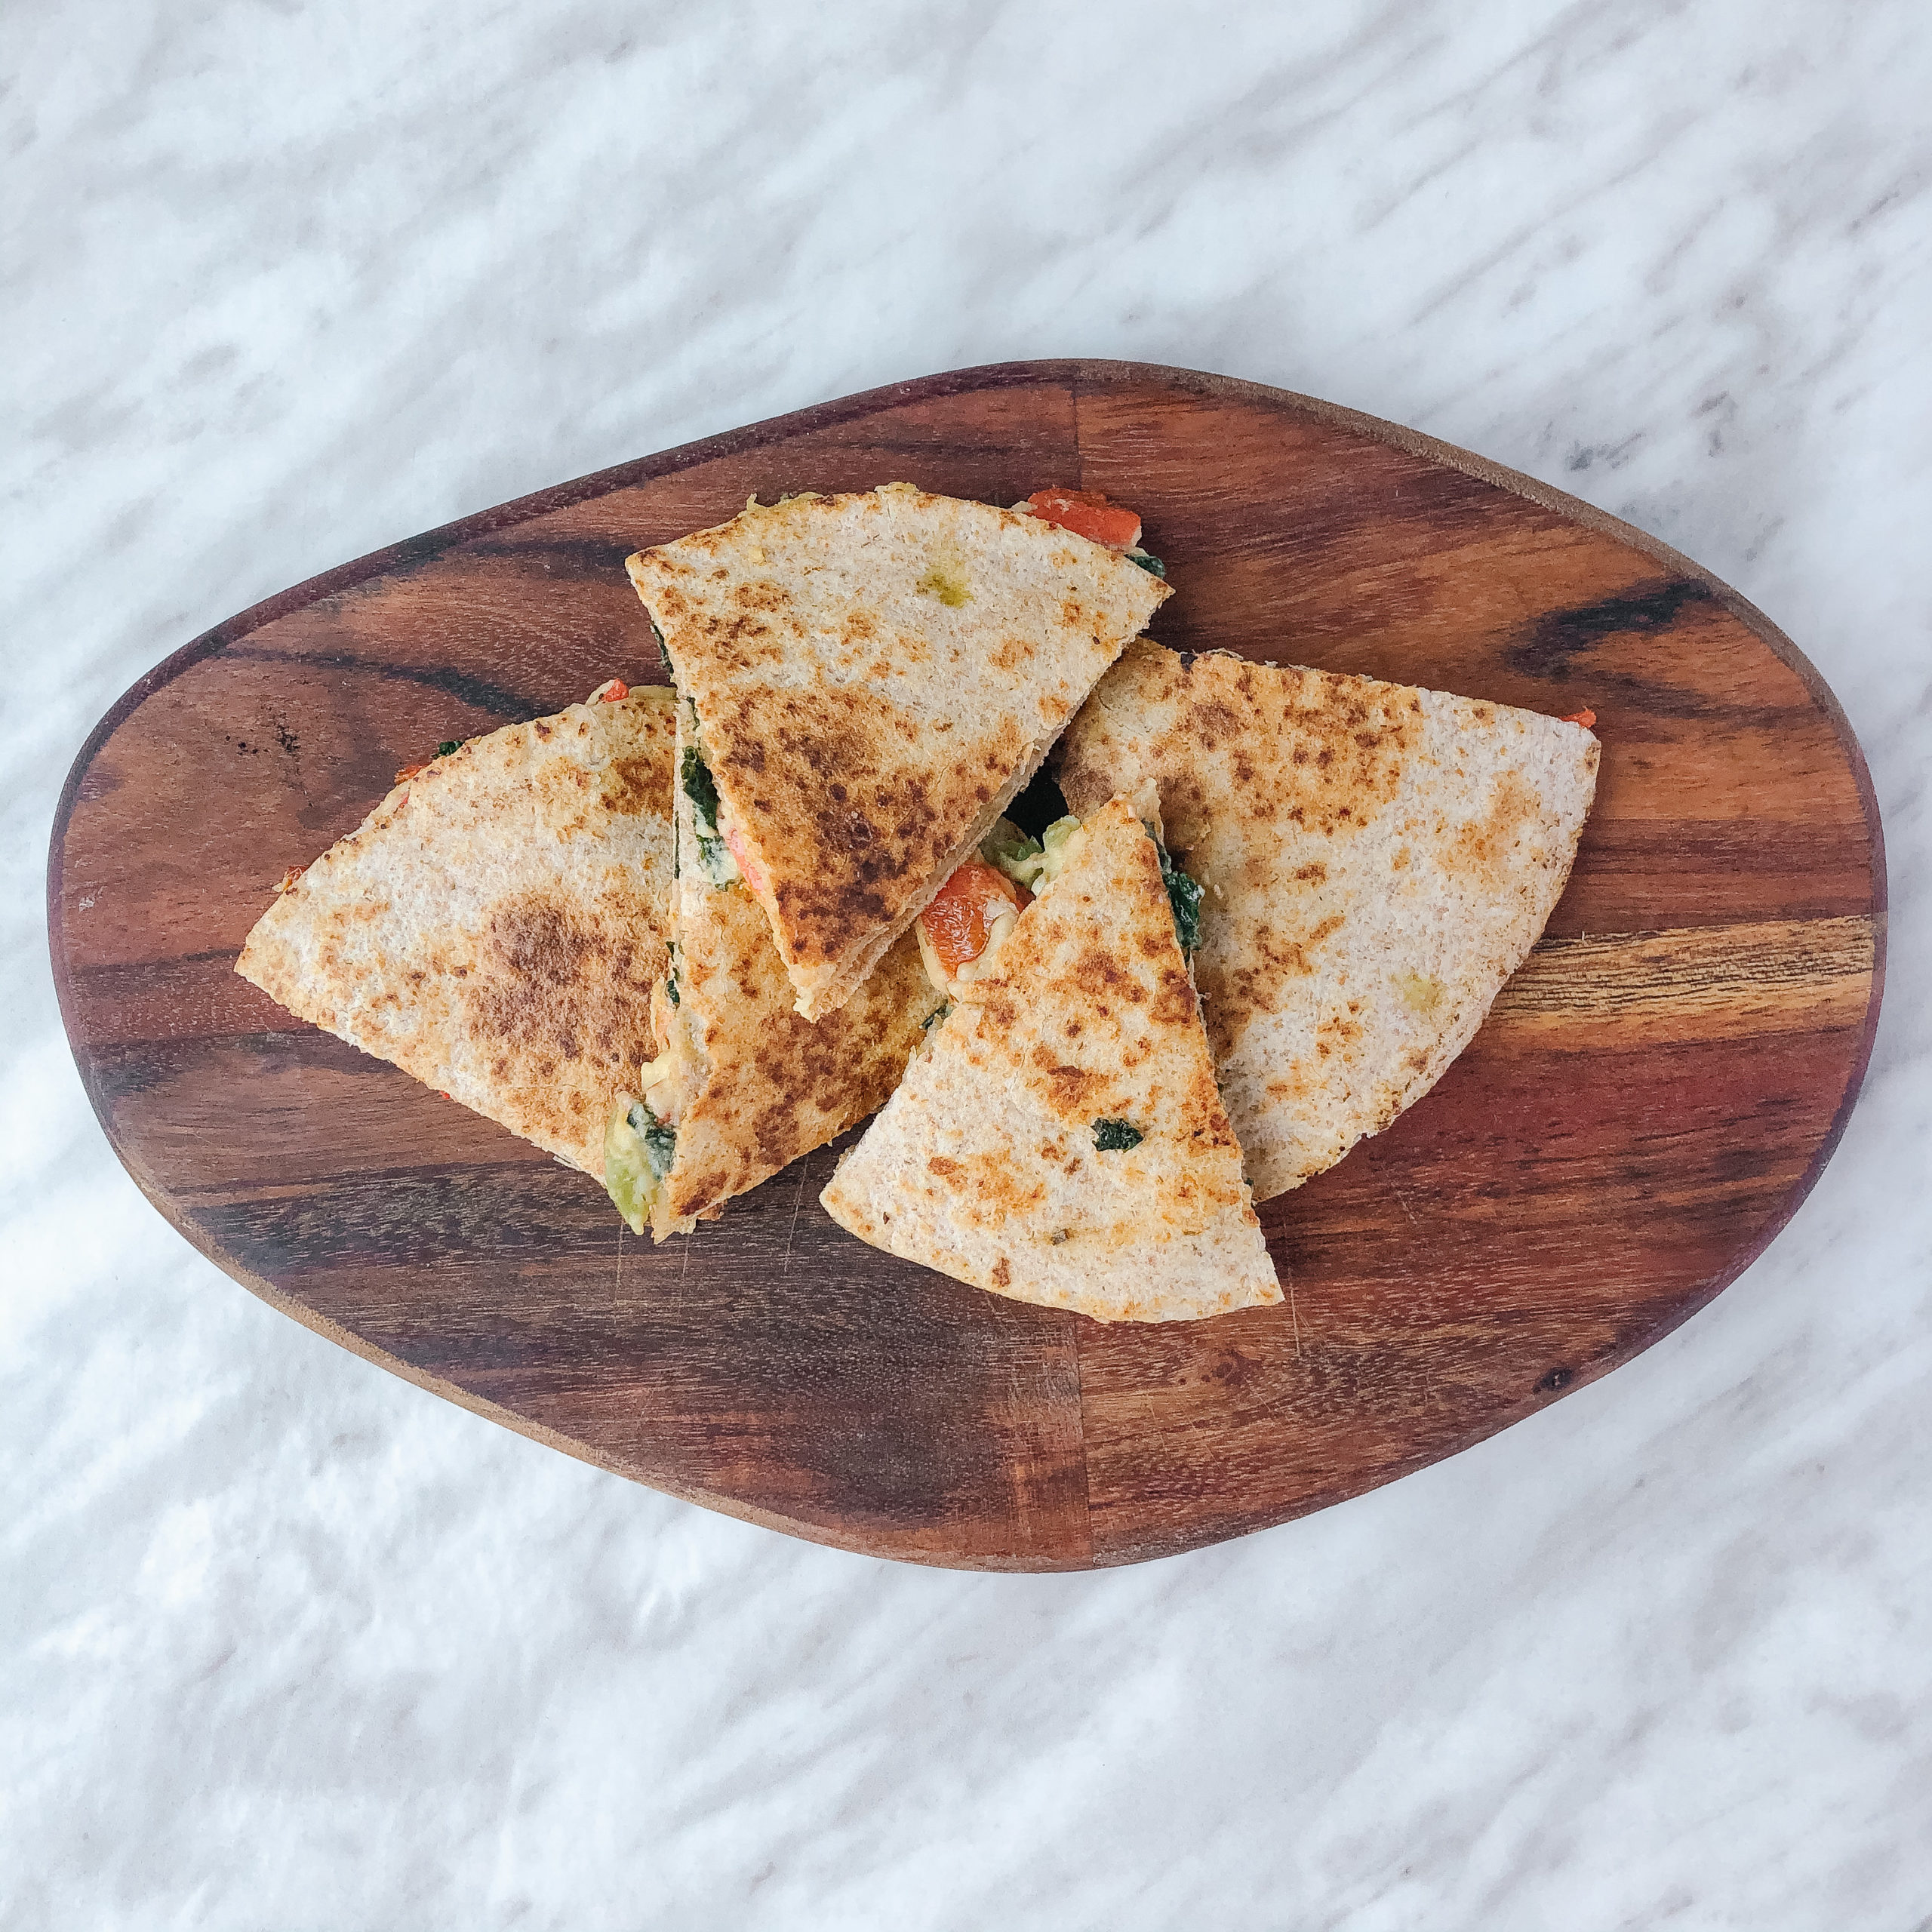 Easy 10-Minute Dairy Free Hummus Quesadilla with Frozen Vegetables